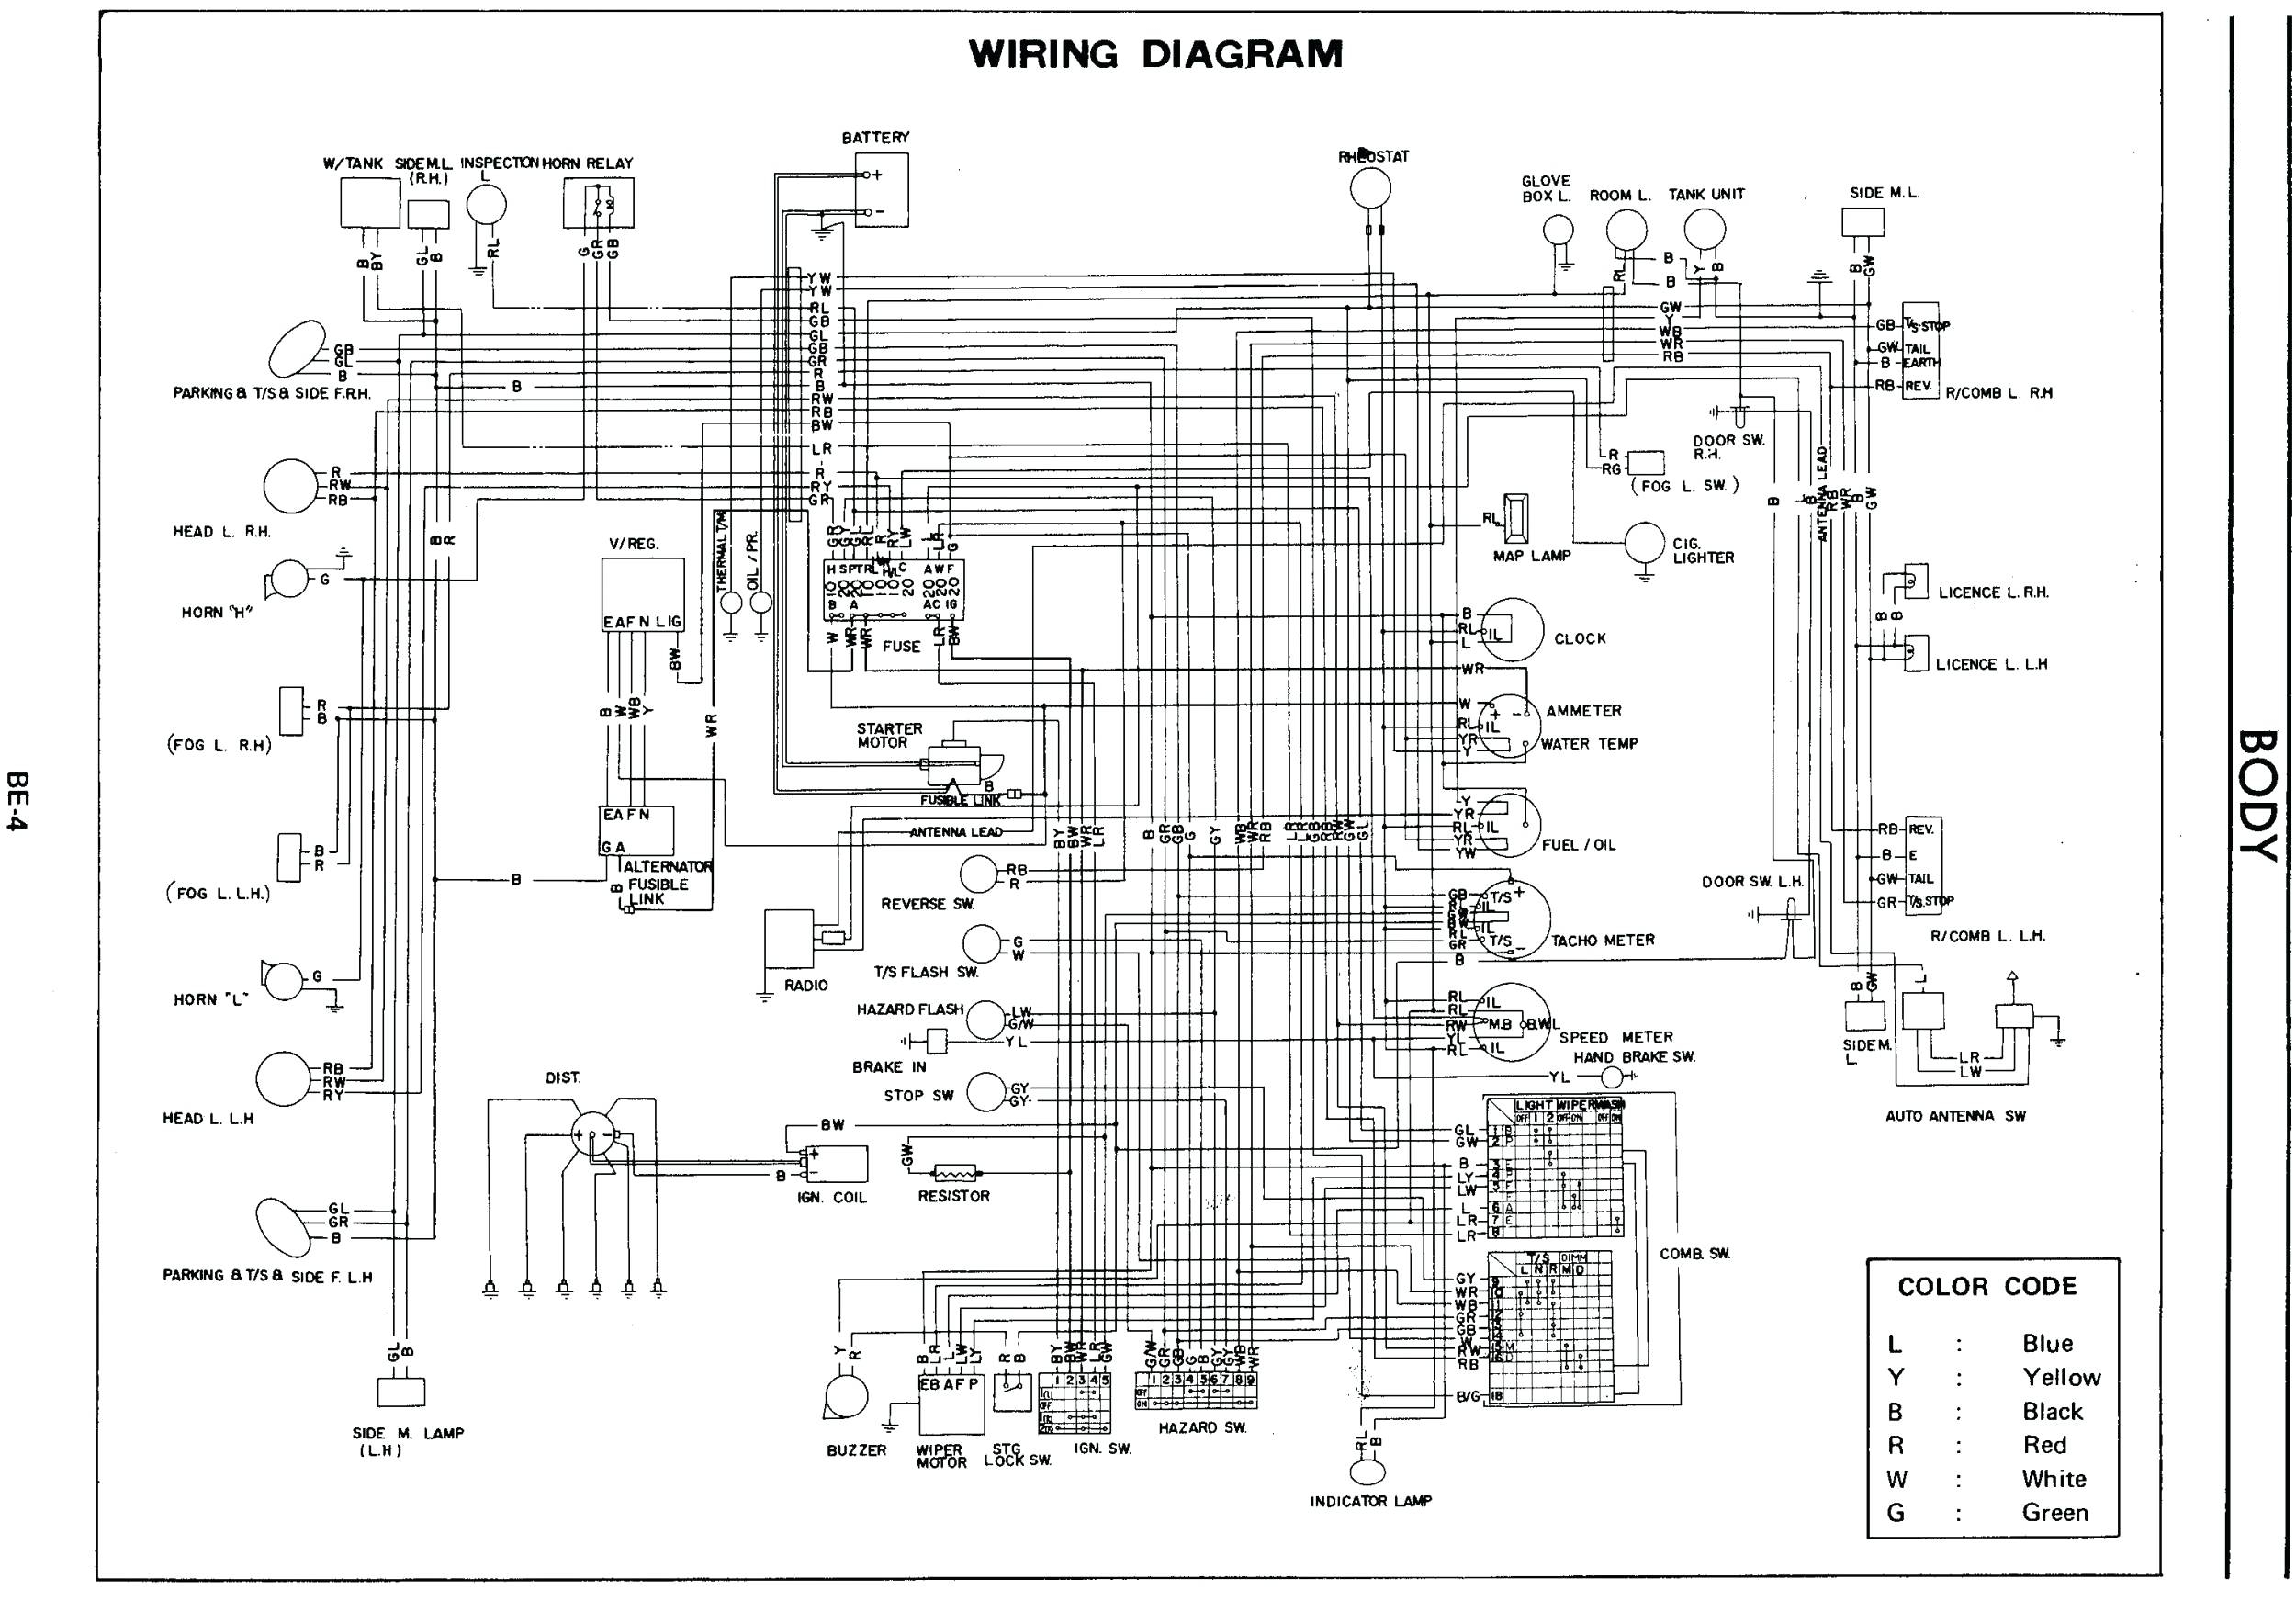 Cooper Wiring Diagram - Wiring Diagram All Data on exit sign clock, exit sign schematic, sign emergency light installation diagram, exit sign horn, emergency exit diagram, exit sign lights, exit sign sensor, exit sign wire, exit sign door, exit sign electrical, exit sign parts, exit sign dimensions, exit sign cover, exit sign accessories, conduit connection diagram, exit sign antenna, exit sign transformer, class 1 division diagram, exit sign generator, exit light battery wiring,